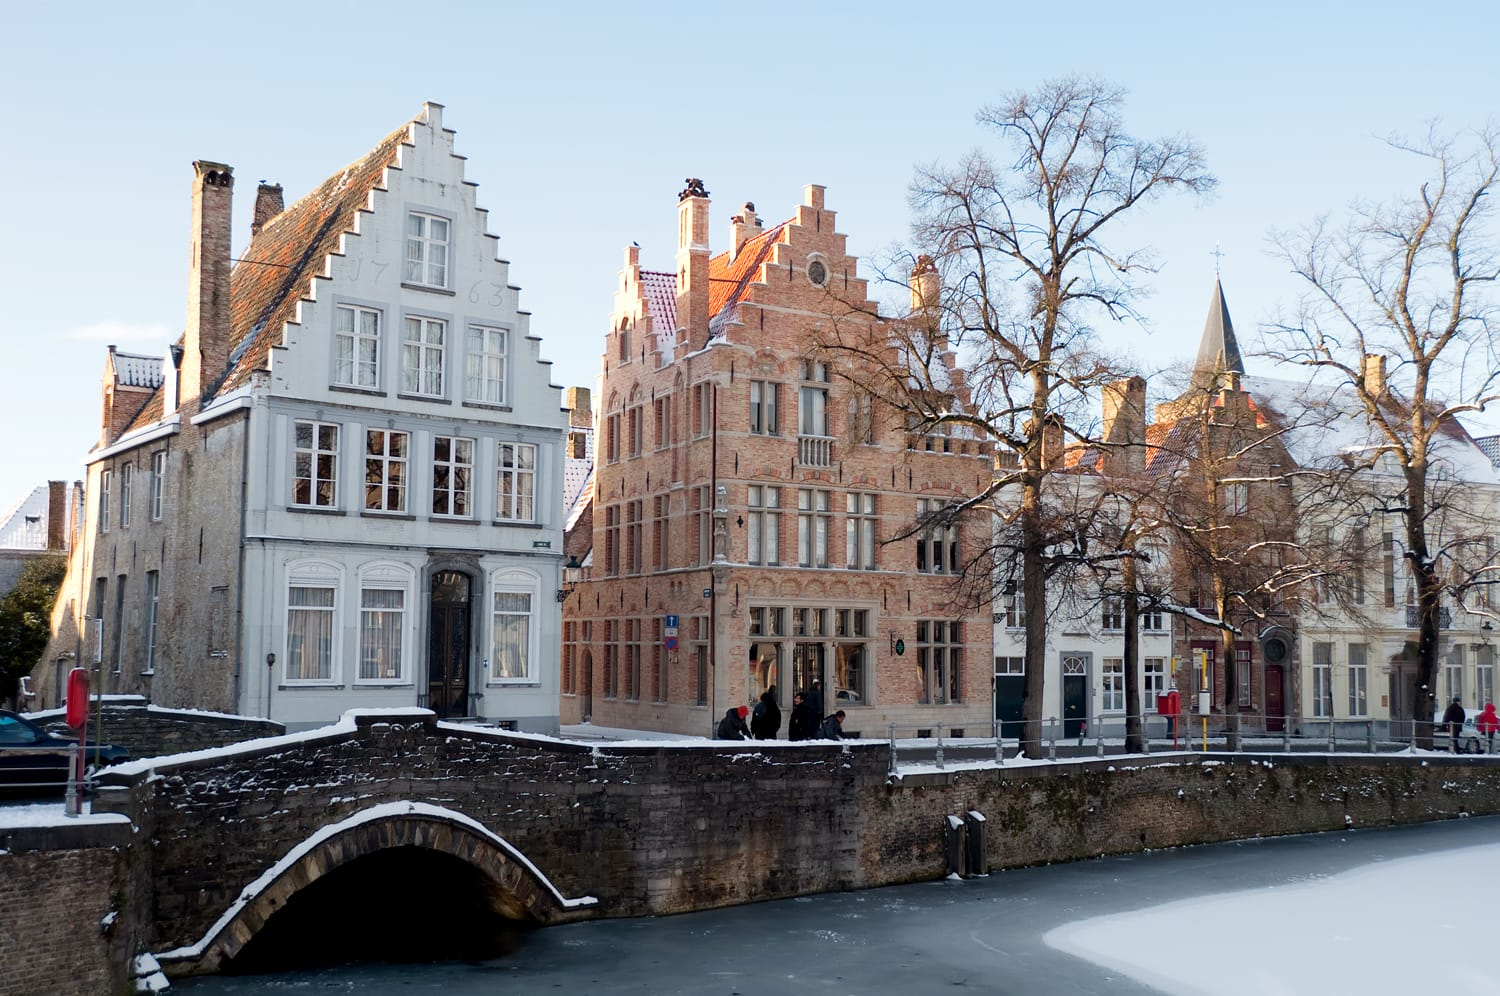 Bruges in Belgium during winter